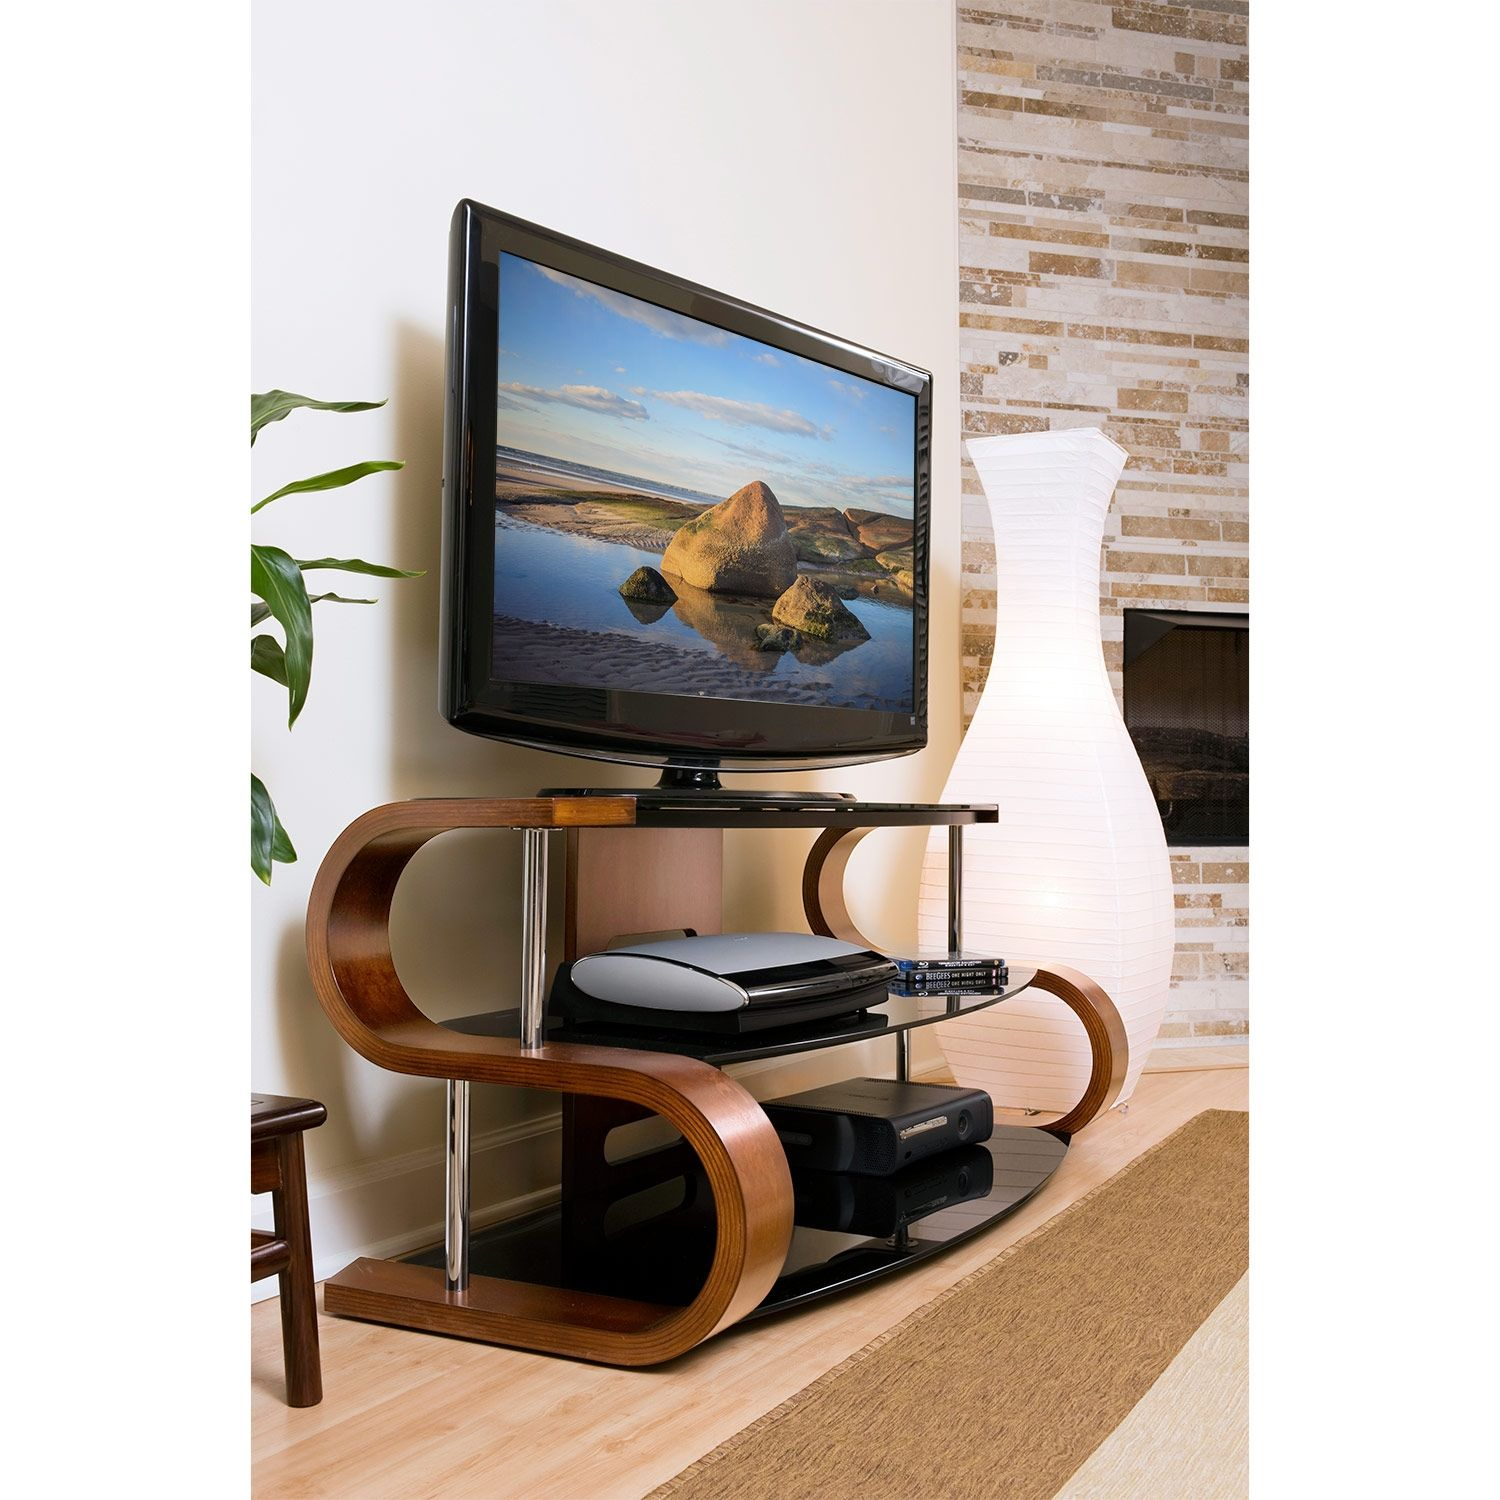 Beacon tv stand walnut contemporary entertainment - Wallpapering around a curved corner ...